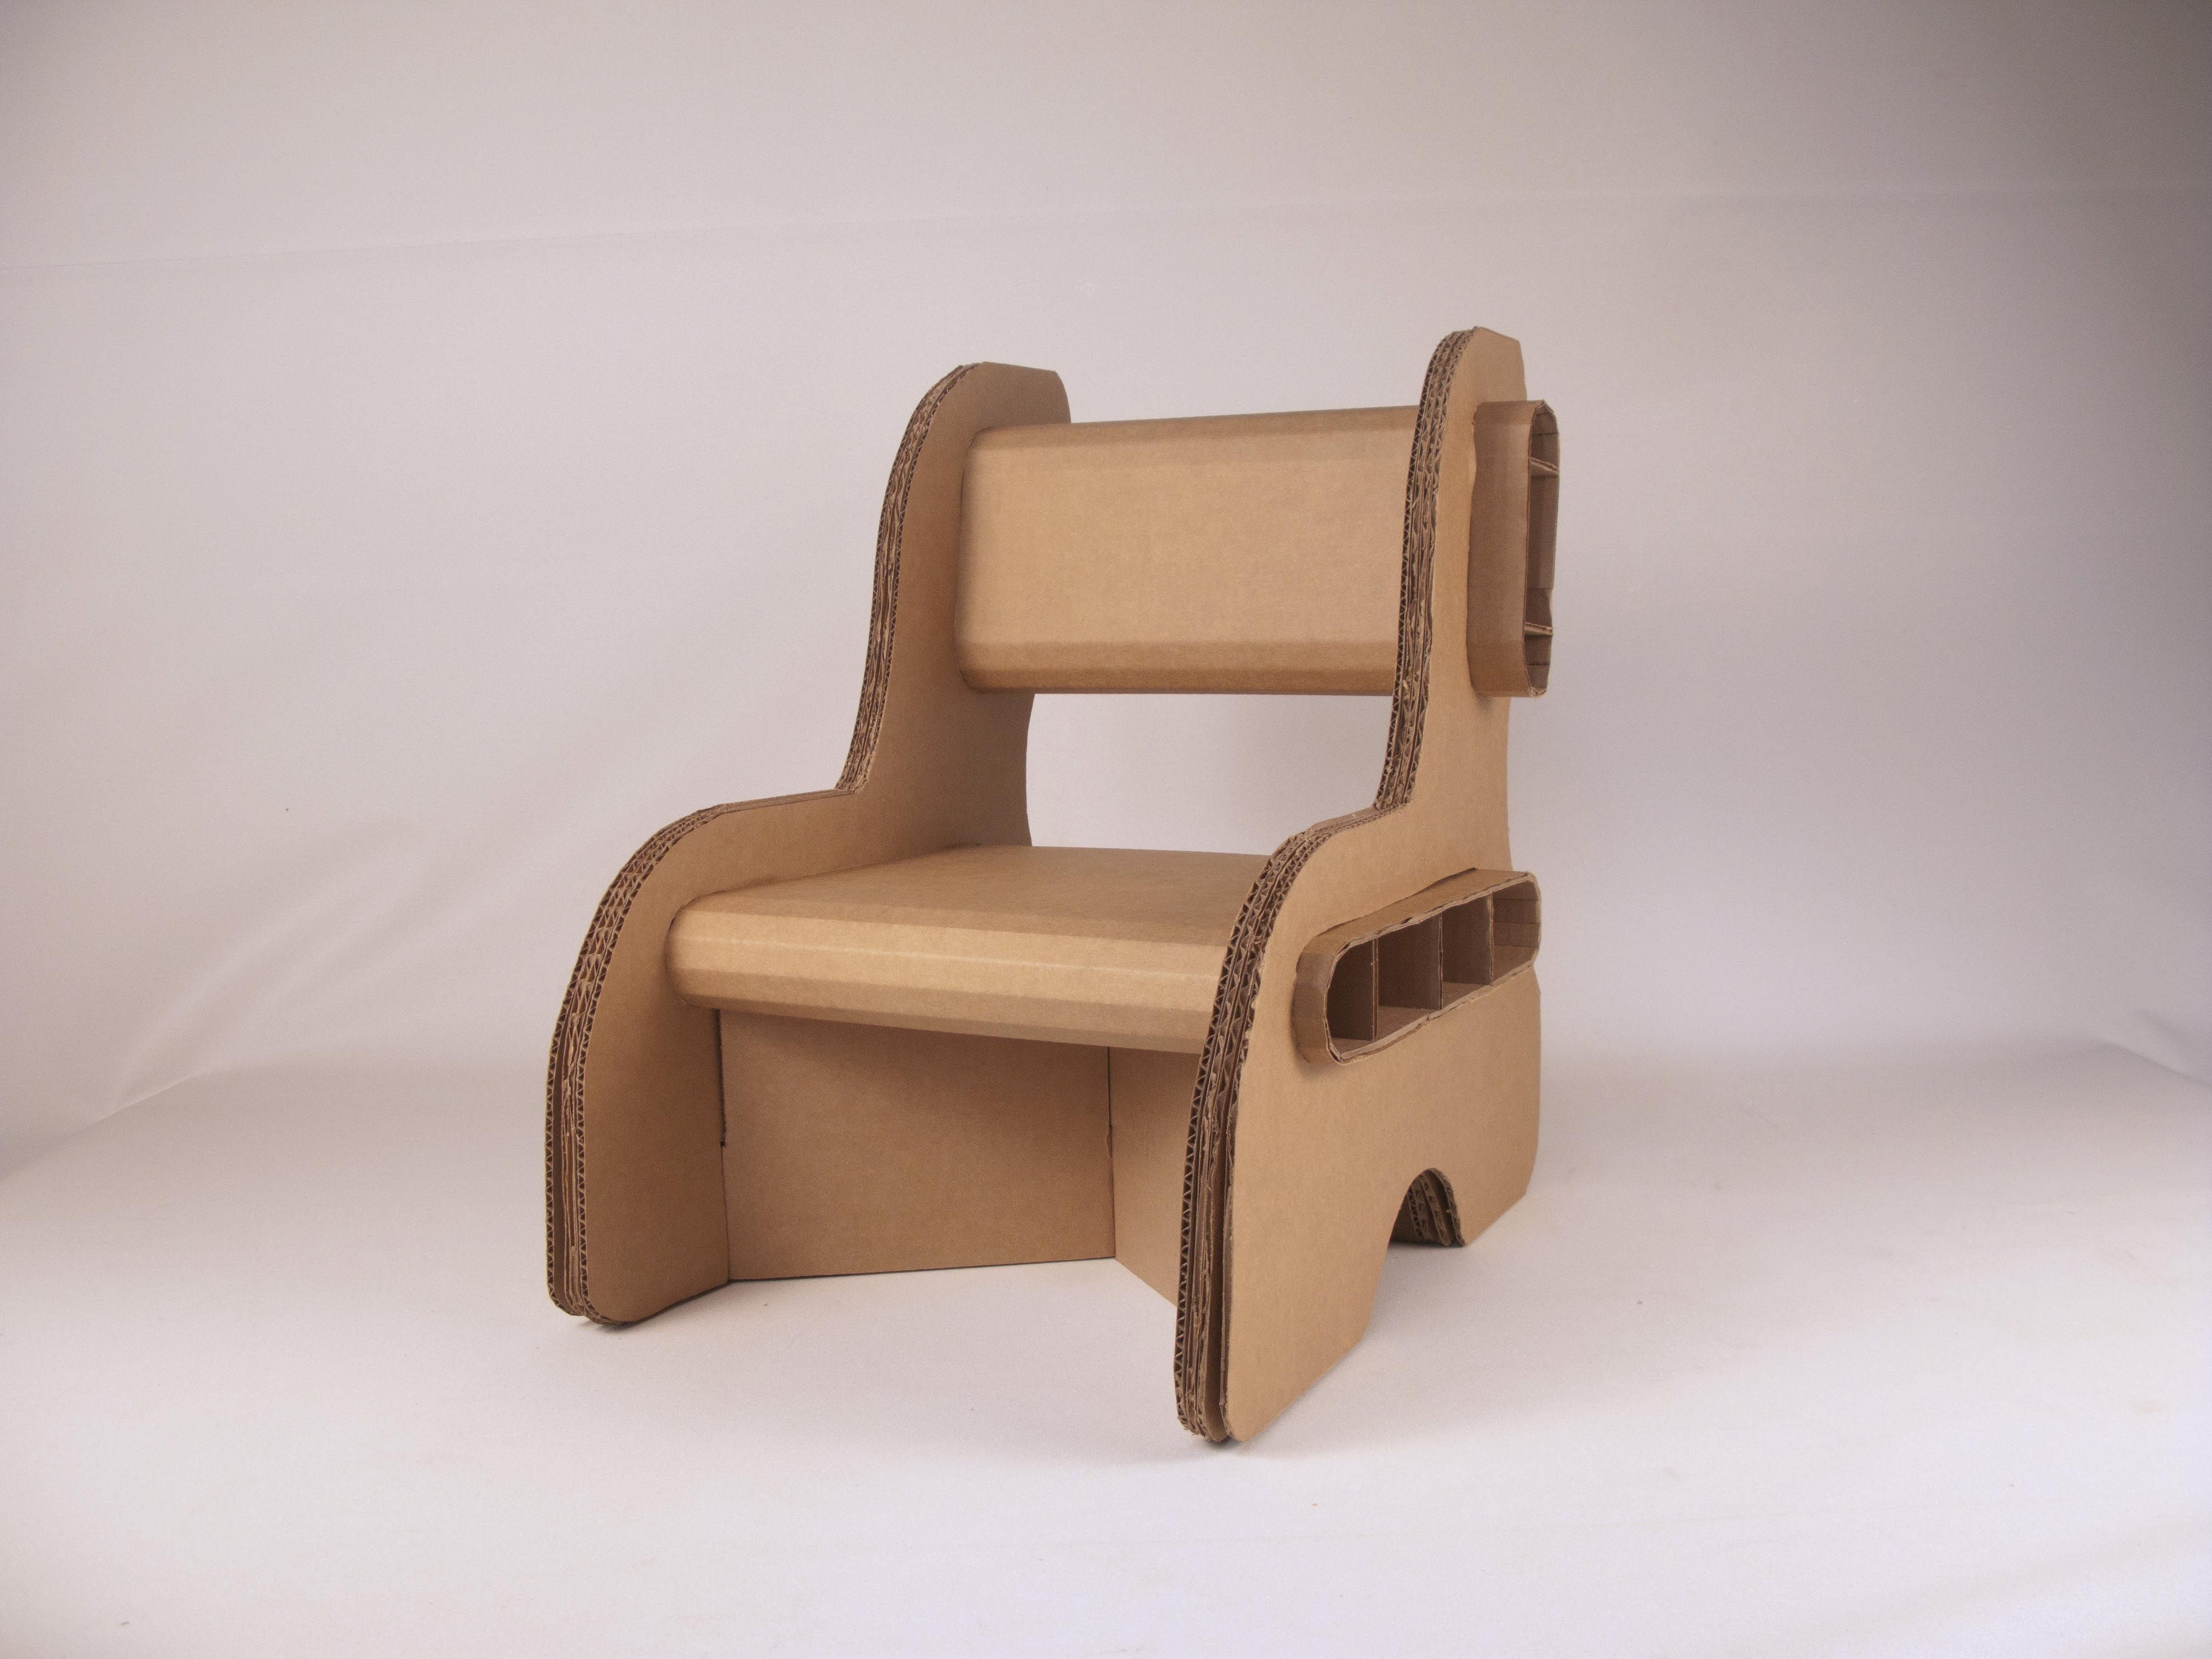 cardboard chair template - Google Search | Cool Designs ...